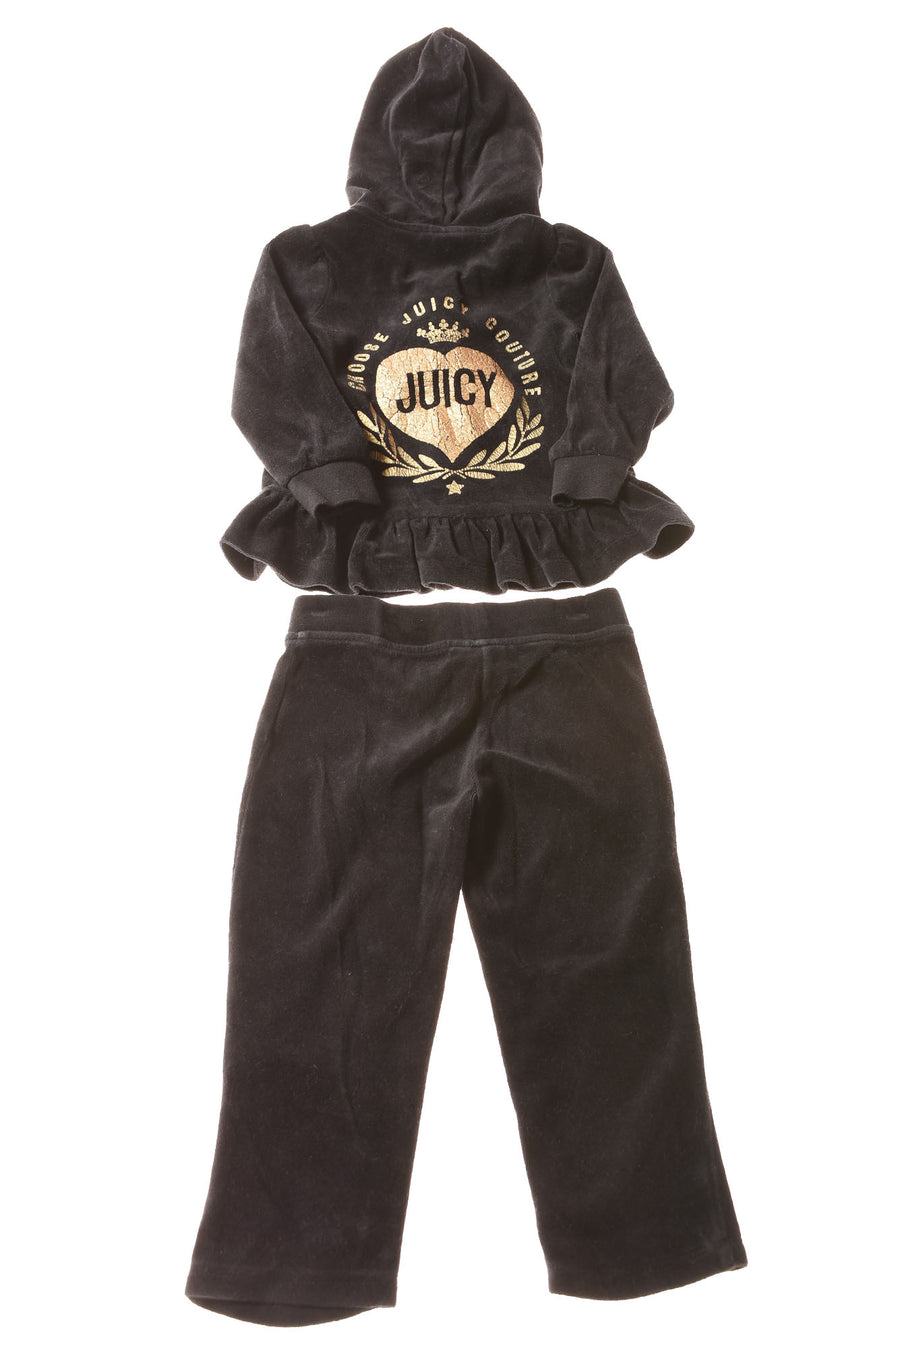 USED Juicy Couture Toddler Girl's Outfit 2T Black